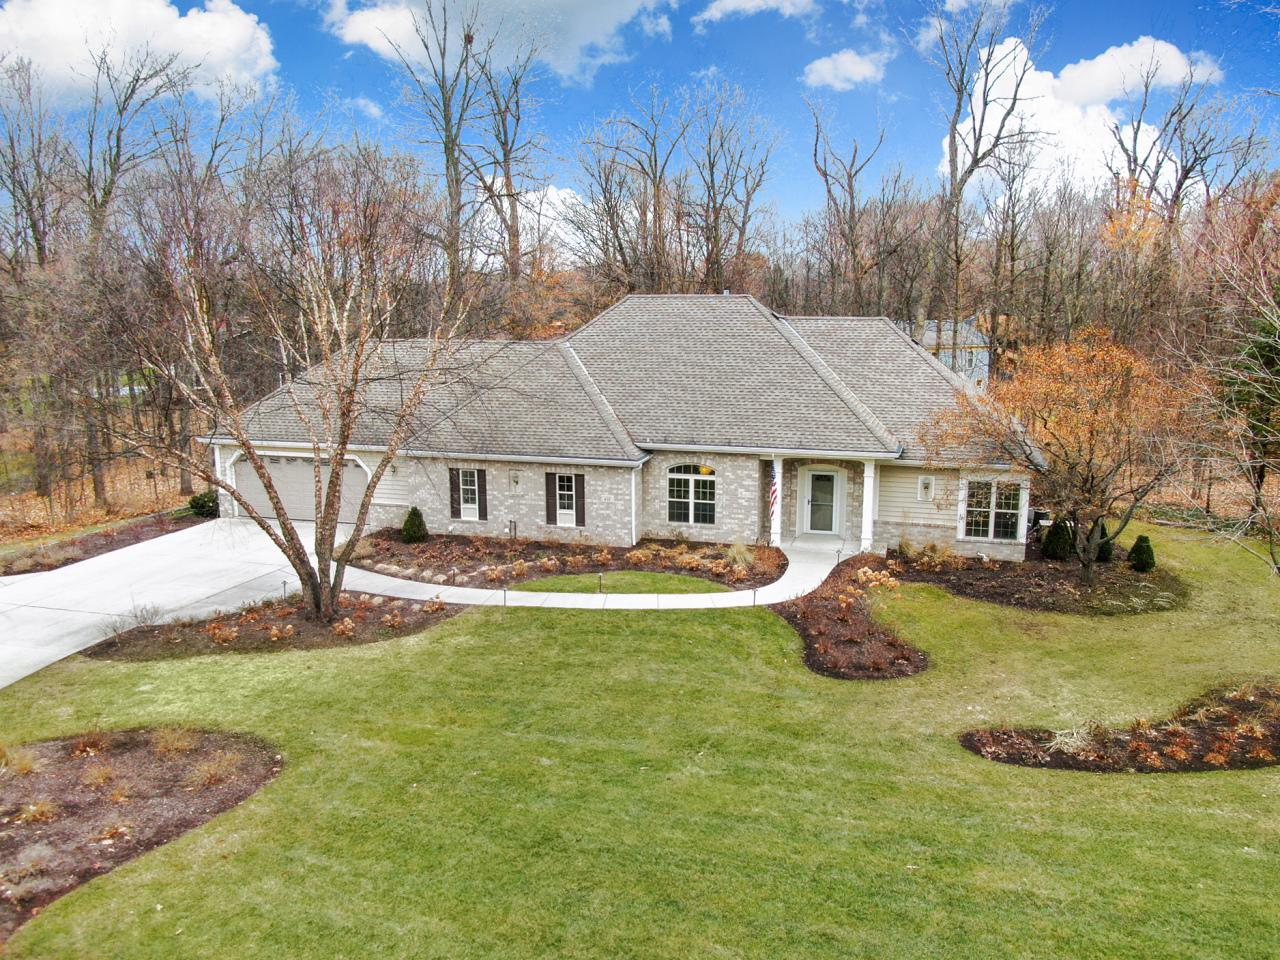 Tucked away in one of Brookfield's wooded gems, Toldt Forest, this beautiful executive ranch is waiting. Walk in and you will be struck by the open concept and large windows inviting views of surrounding forest in. This home has a wonderful flow to it. The gourmet kitchen is the hub with Formal Dining Room, Dinette, Great Room, and Sunroom just a few steps away. A unique Triview gas fireplace can be enjoyed from the Kitchen, Great Room and the Sunroom as well. The Master suite includes ensuite with walk-in shower and whirlpool tub. The lower level features a full bath and bedroom along with a finished rec room with daylight windows. There are many updates to this wonderful home, most notably a newly professional landscaped yard with underground sprinklers.